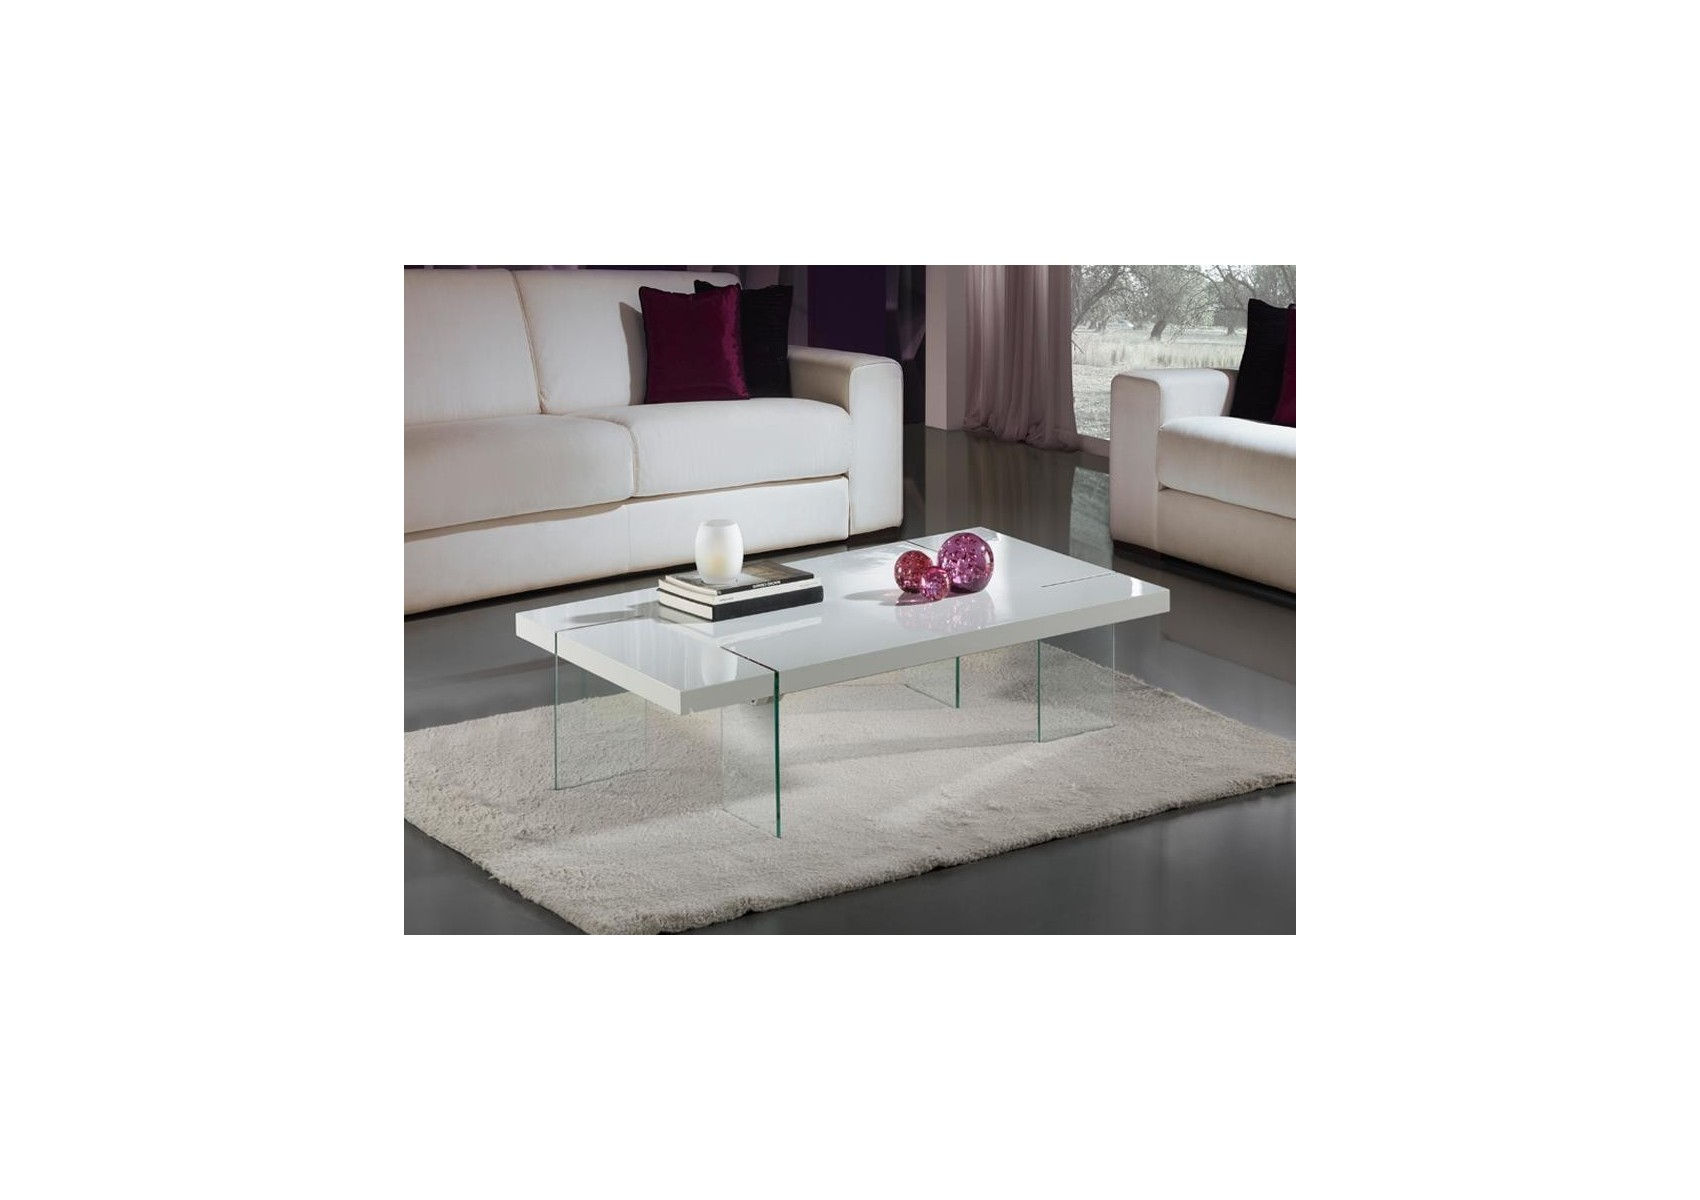 Table basse design laqu blanc et verre tremp brisa deco schuller boit - Table basse verre et blanc ...